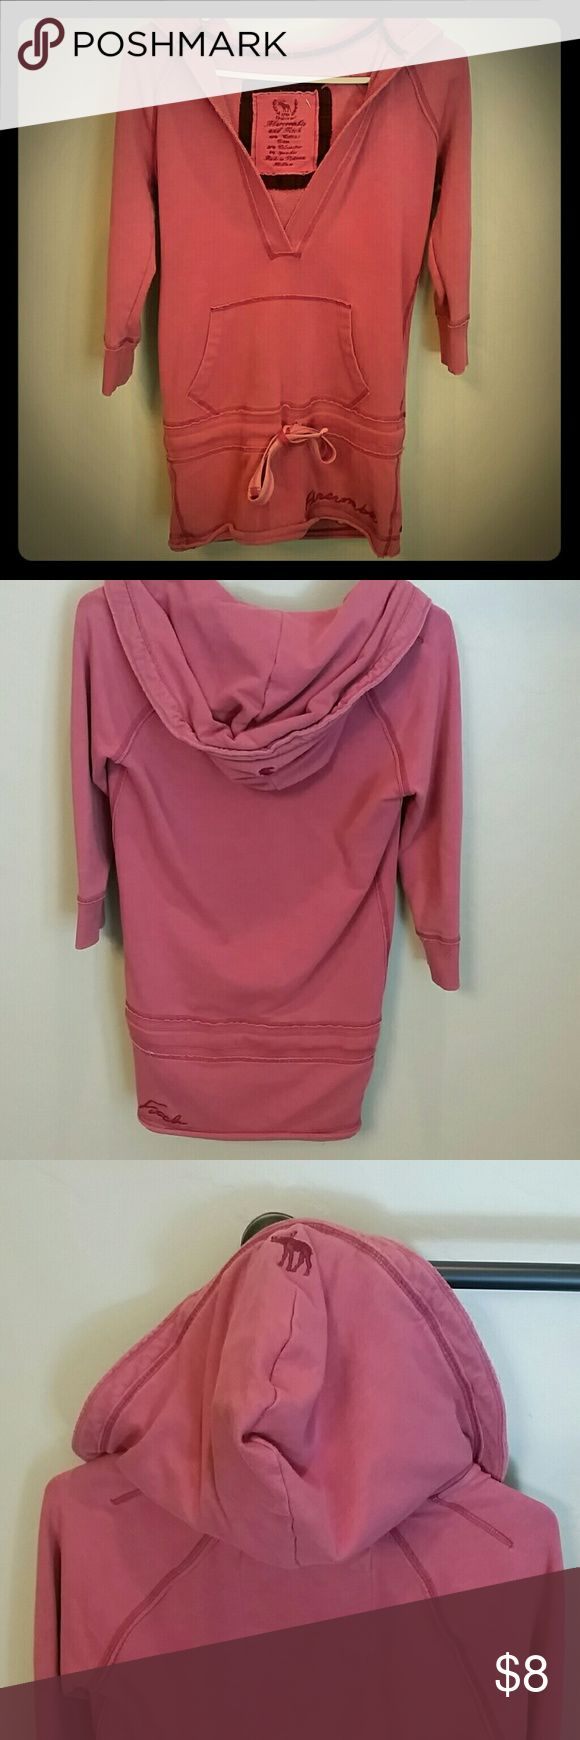 Abercrombie and Fitch hooded 3/4 sleeve pink shirt Abercrombie and Fitch hooded 3/4 sleeve pink shirt size medium. No holes or stains. Great paired with leggings or jeans. Abercrombie & Fitch Tops Sweatshirts & Hoodies